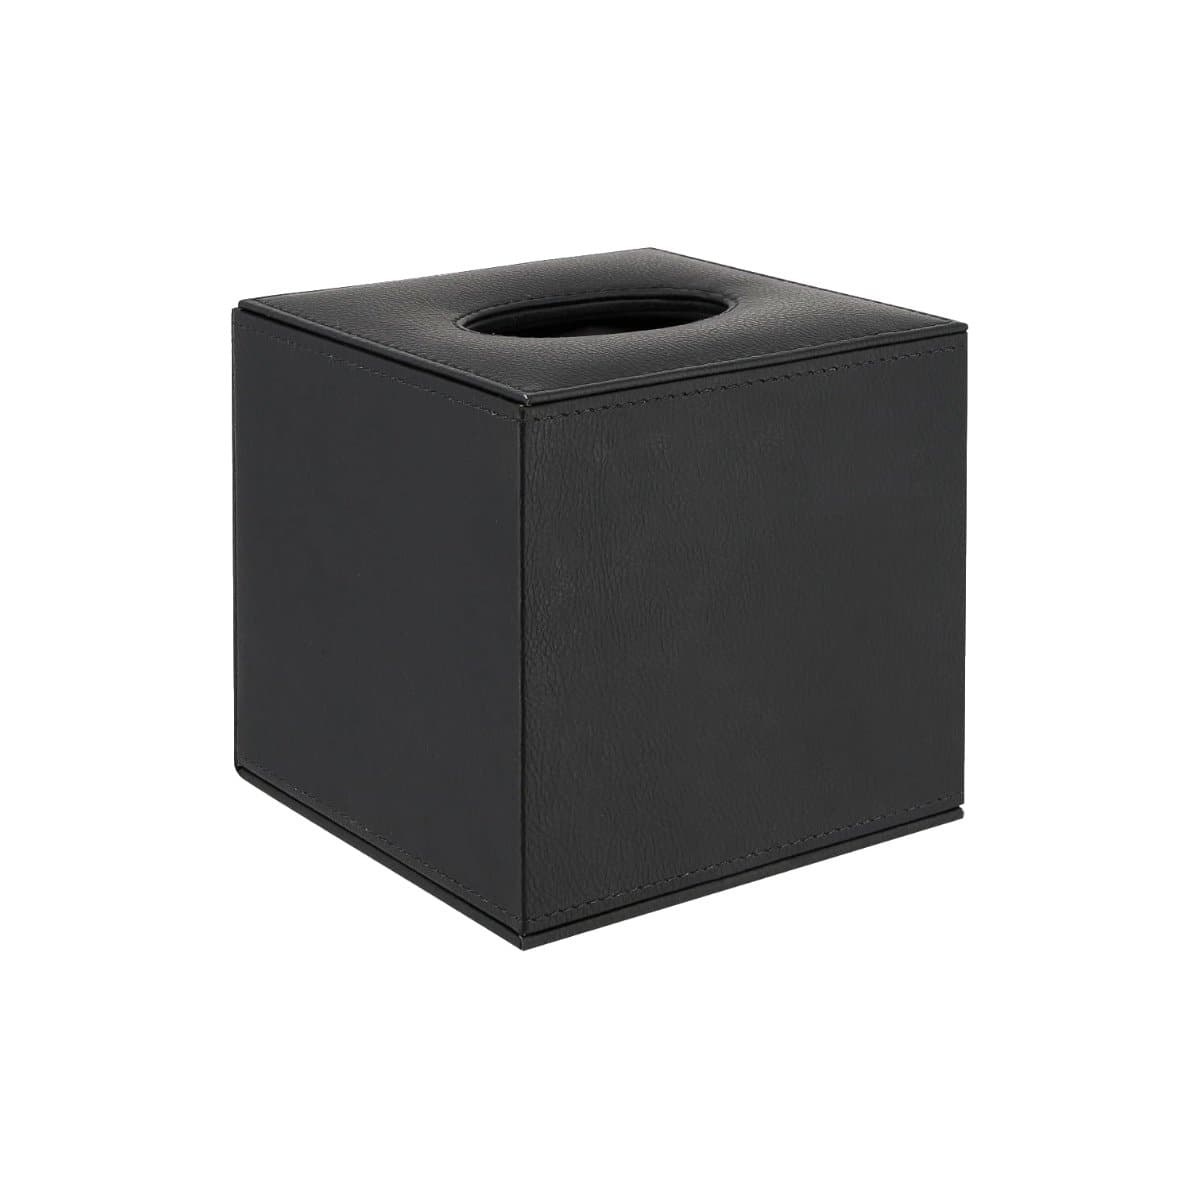 Konrad S. Tissue Box Cover, cube 13 x 13 x 13cm, PU Leather, Black